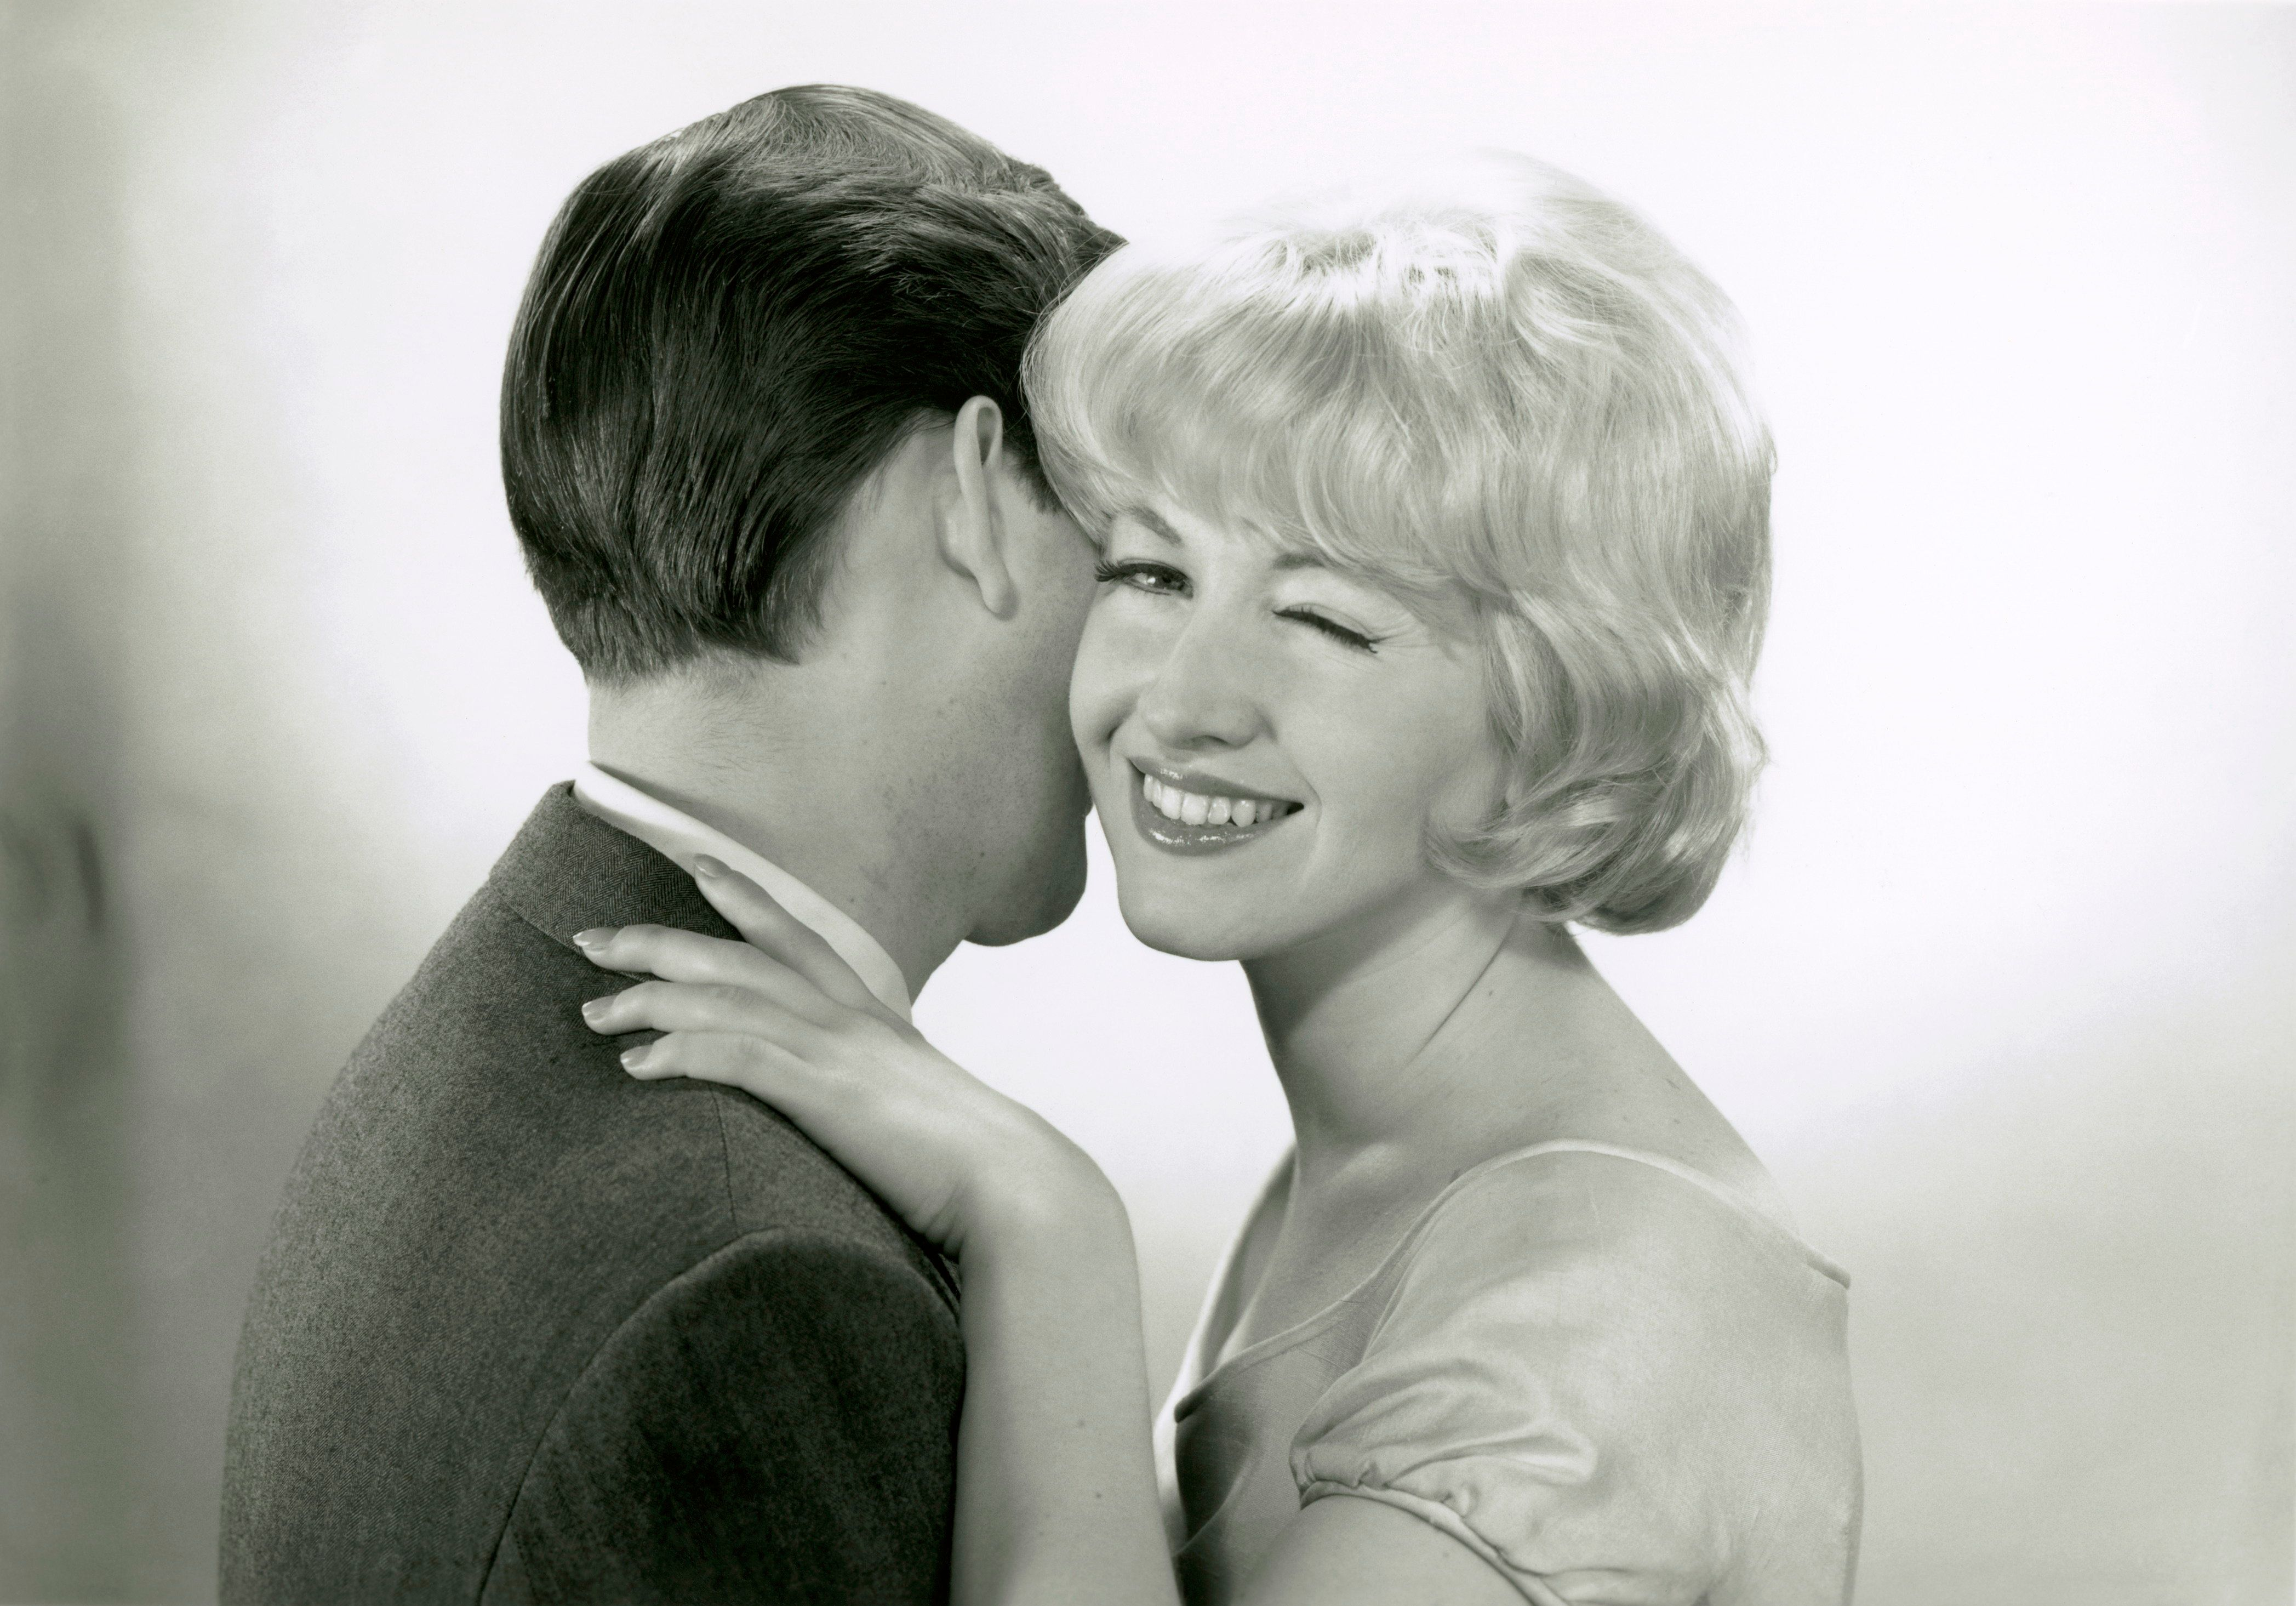 UNITED STATES - CIRCA 1950s:  Man embracing winking woman.  (Photo by George Marks/Retrofile/Getty Images)